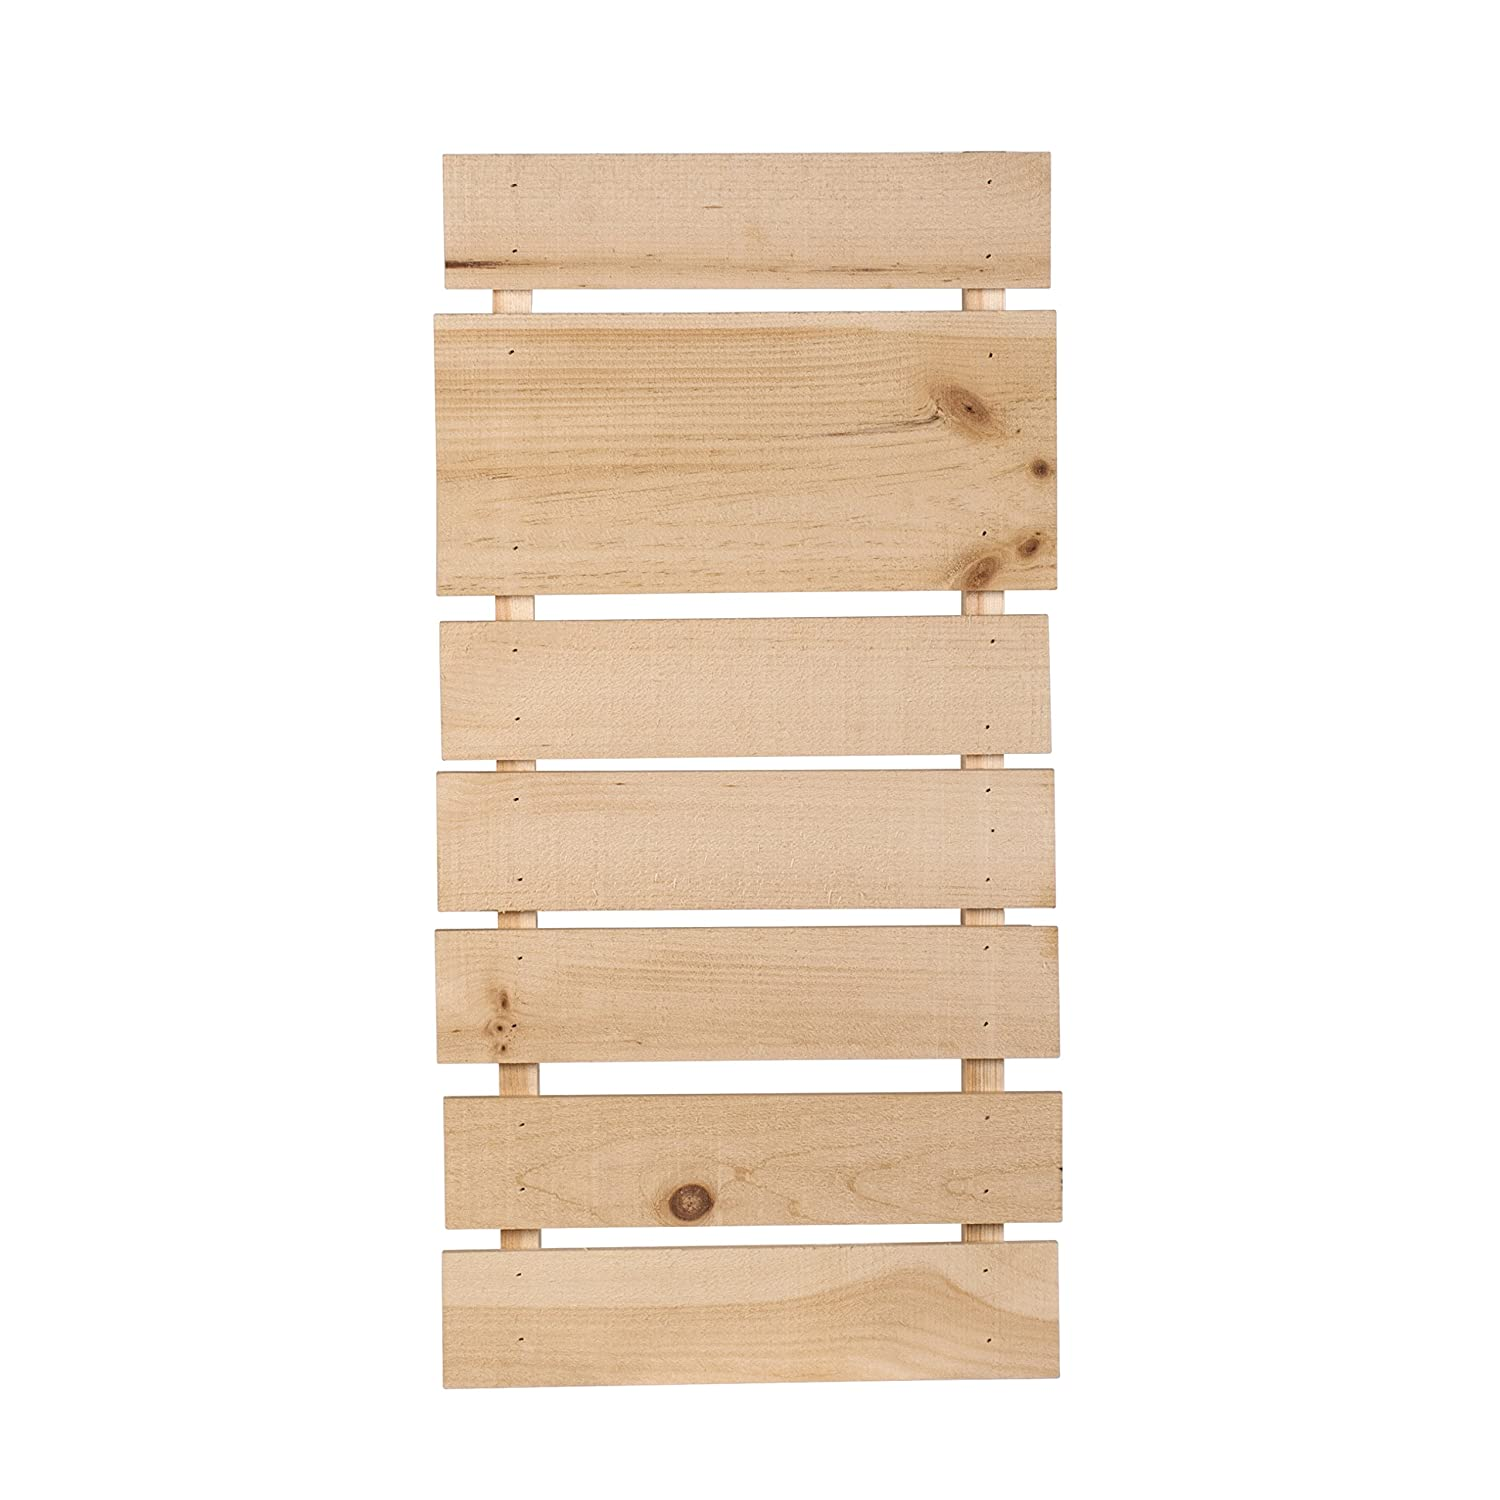 Walnut Hollow 40171 Rustic Pallet, 24 by 12 24 by 12